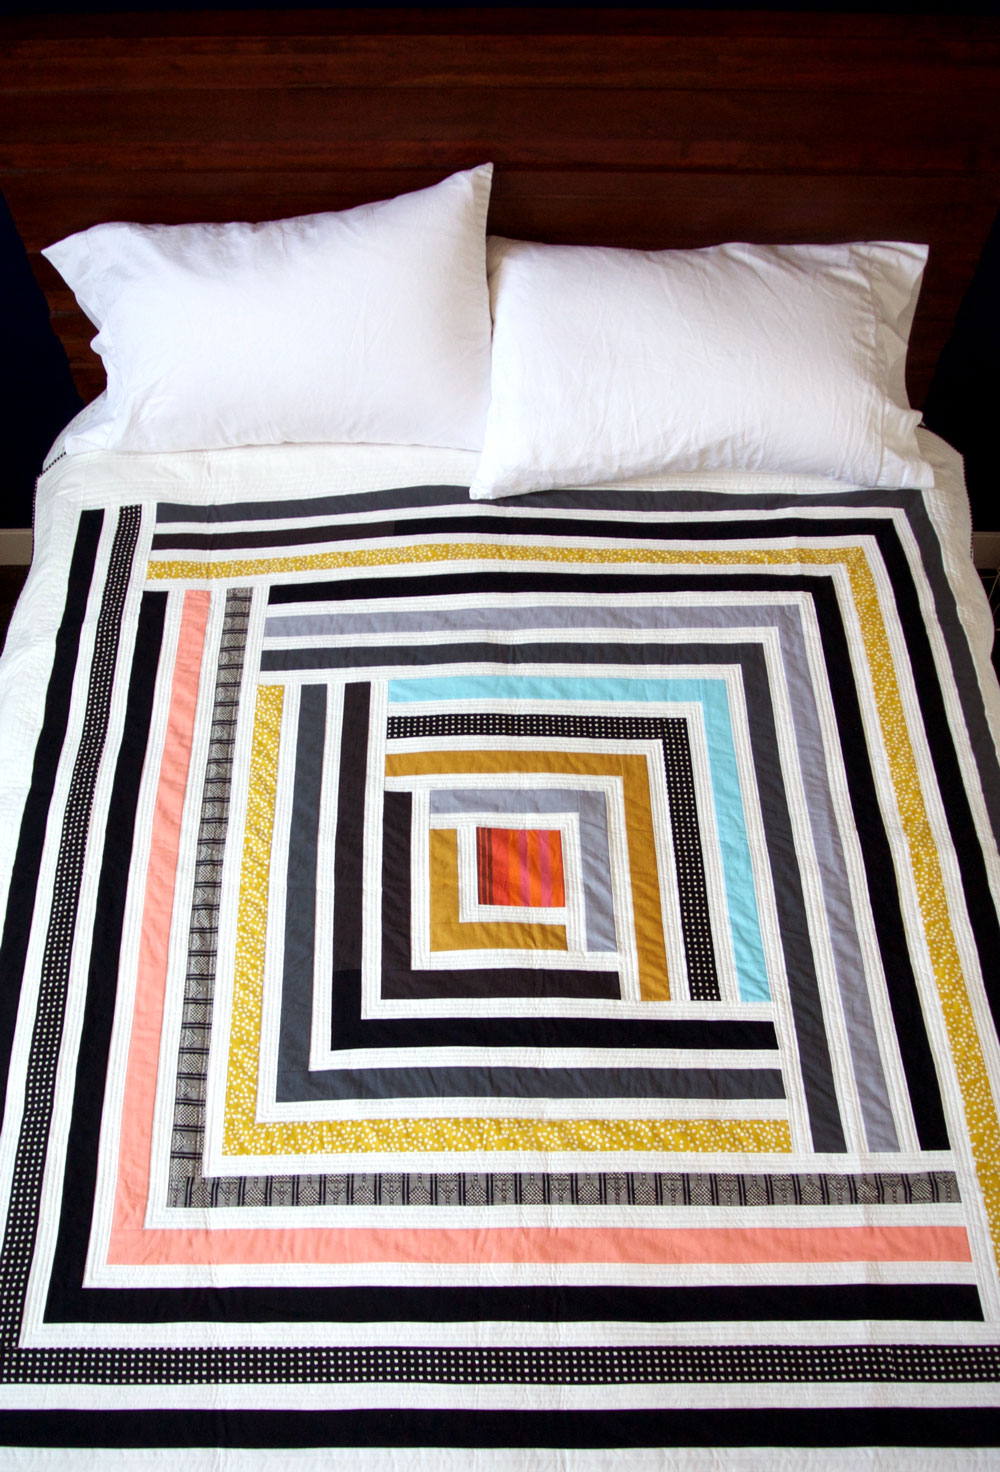 how to safely clean stains from a quilt